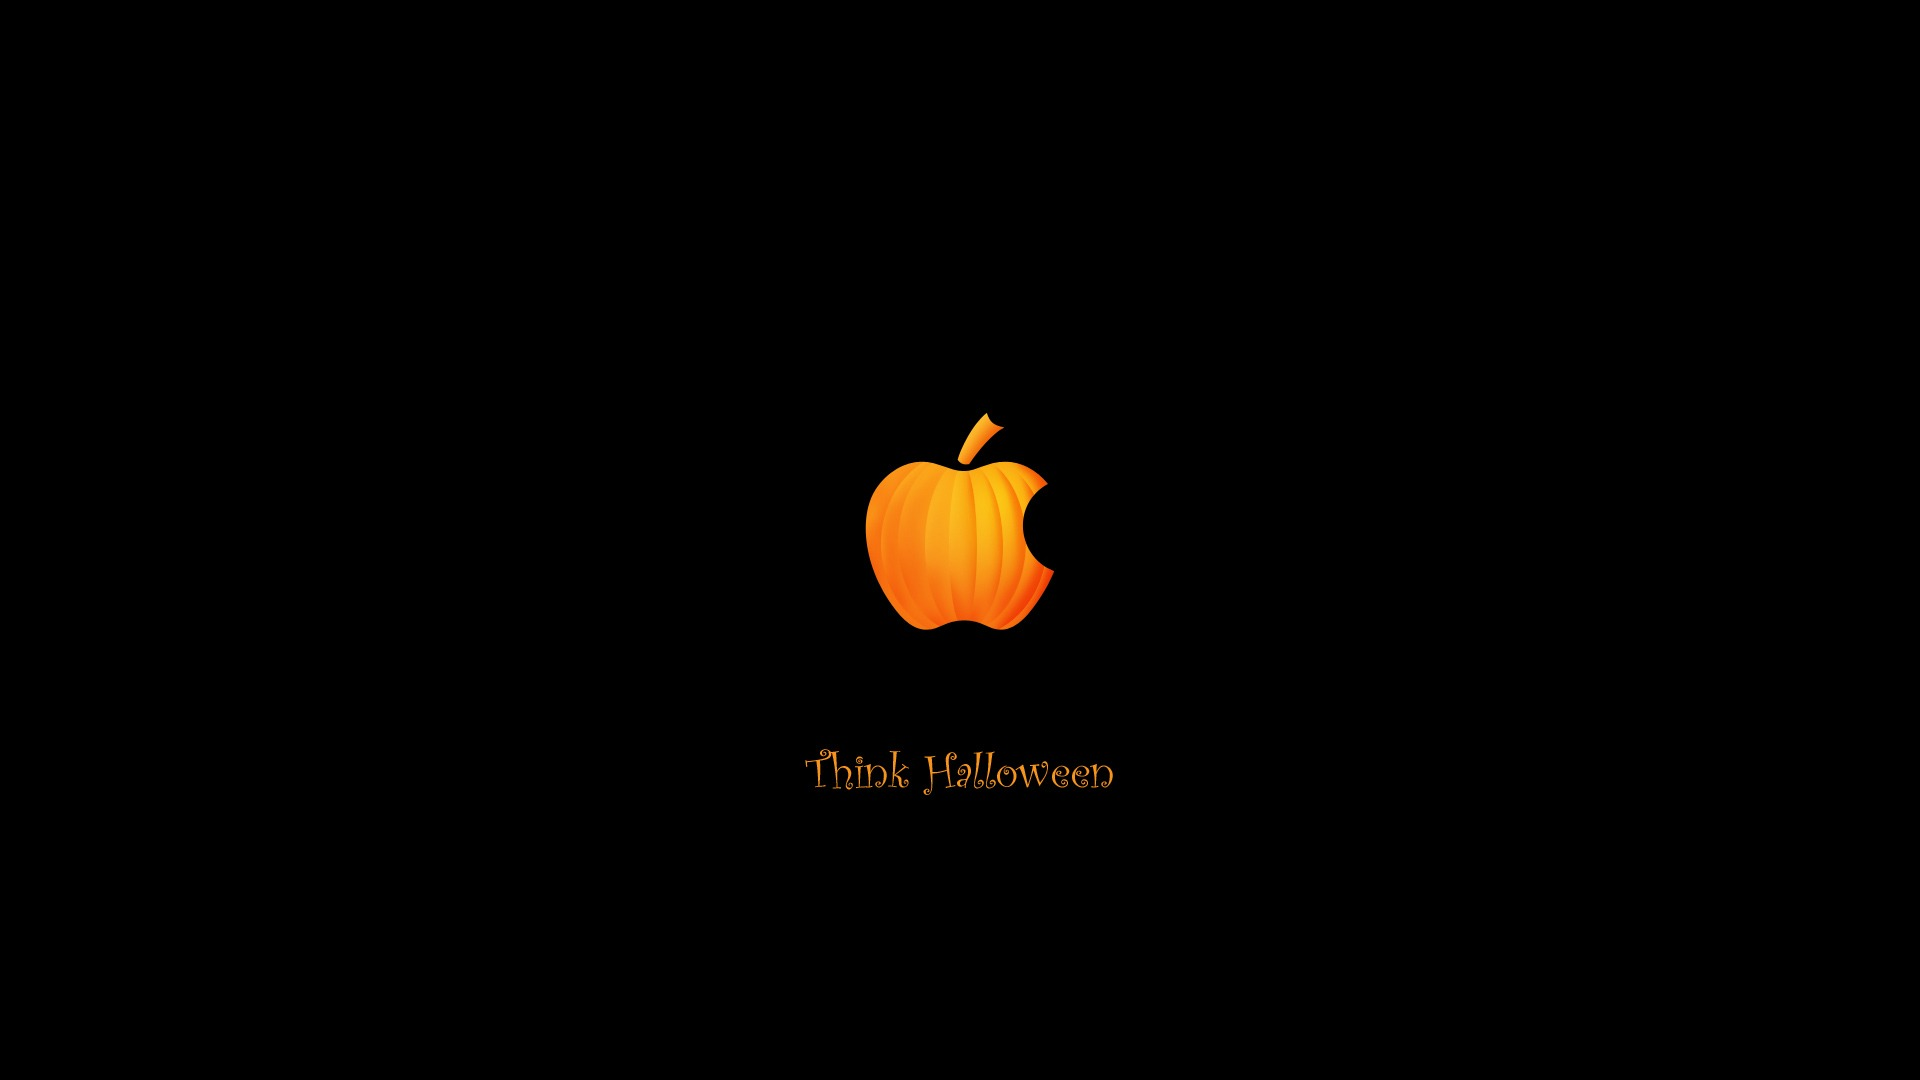 Download Wallpaper Macbook Halloween - apple_halloween_wallpaper_halloween_holidays_3194  Trends_67726.jpg